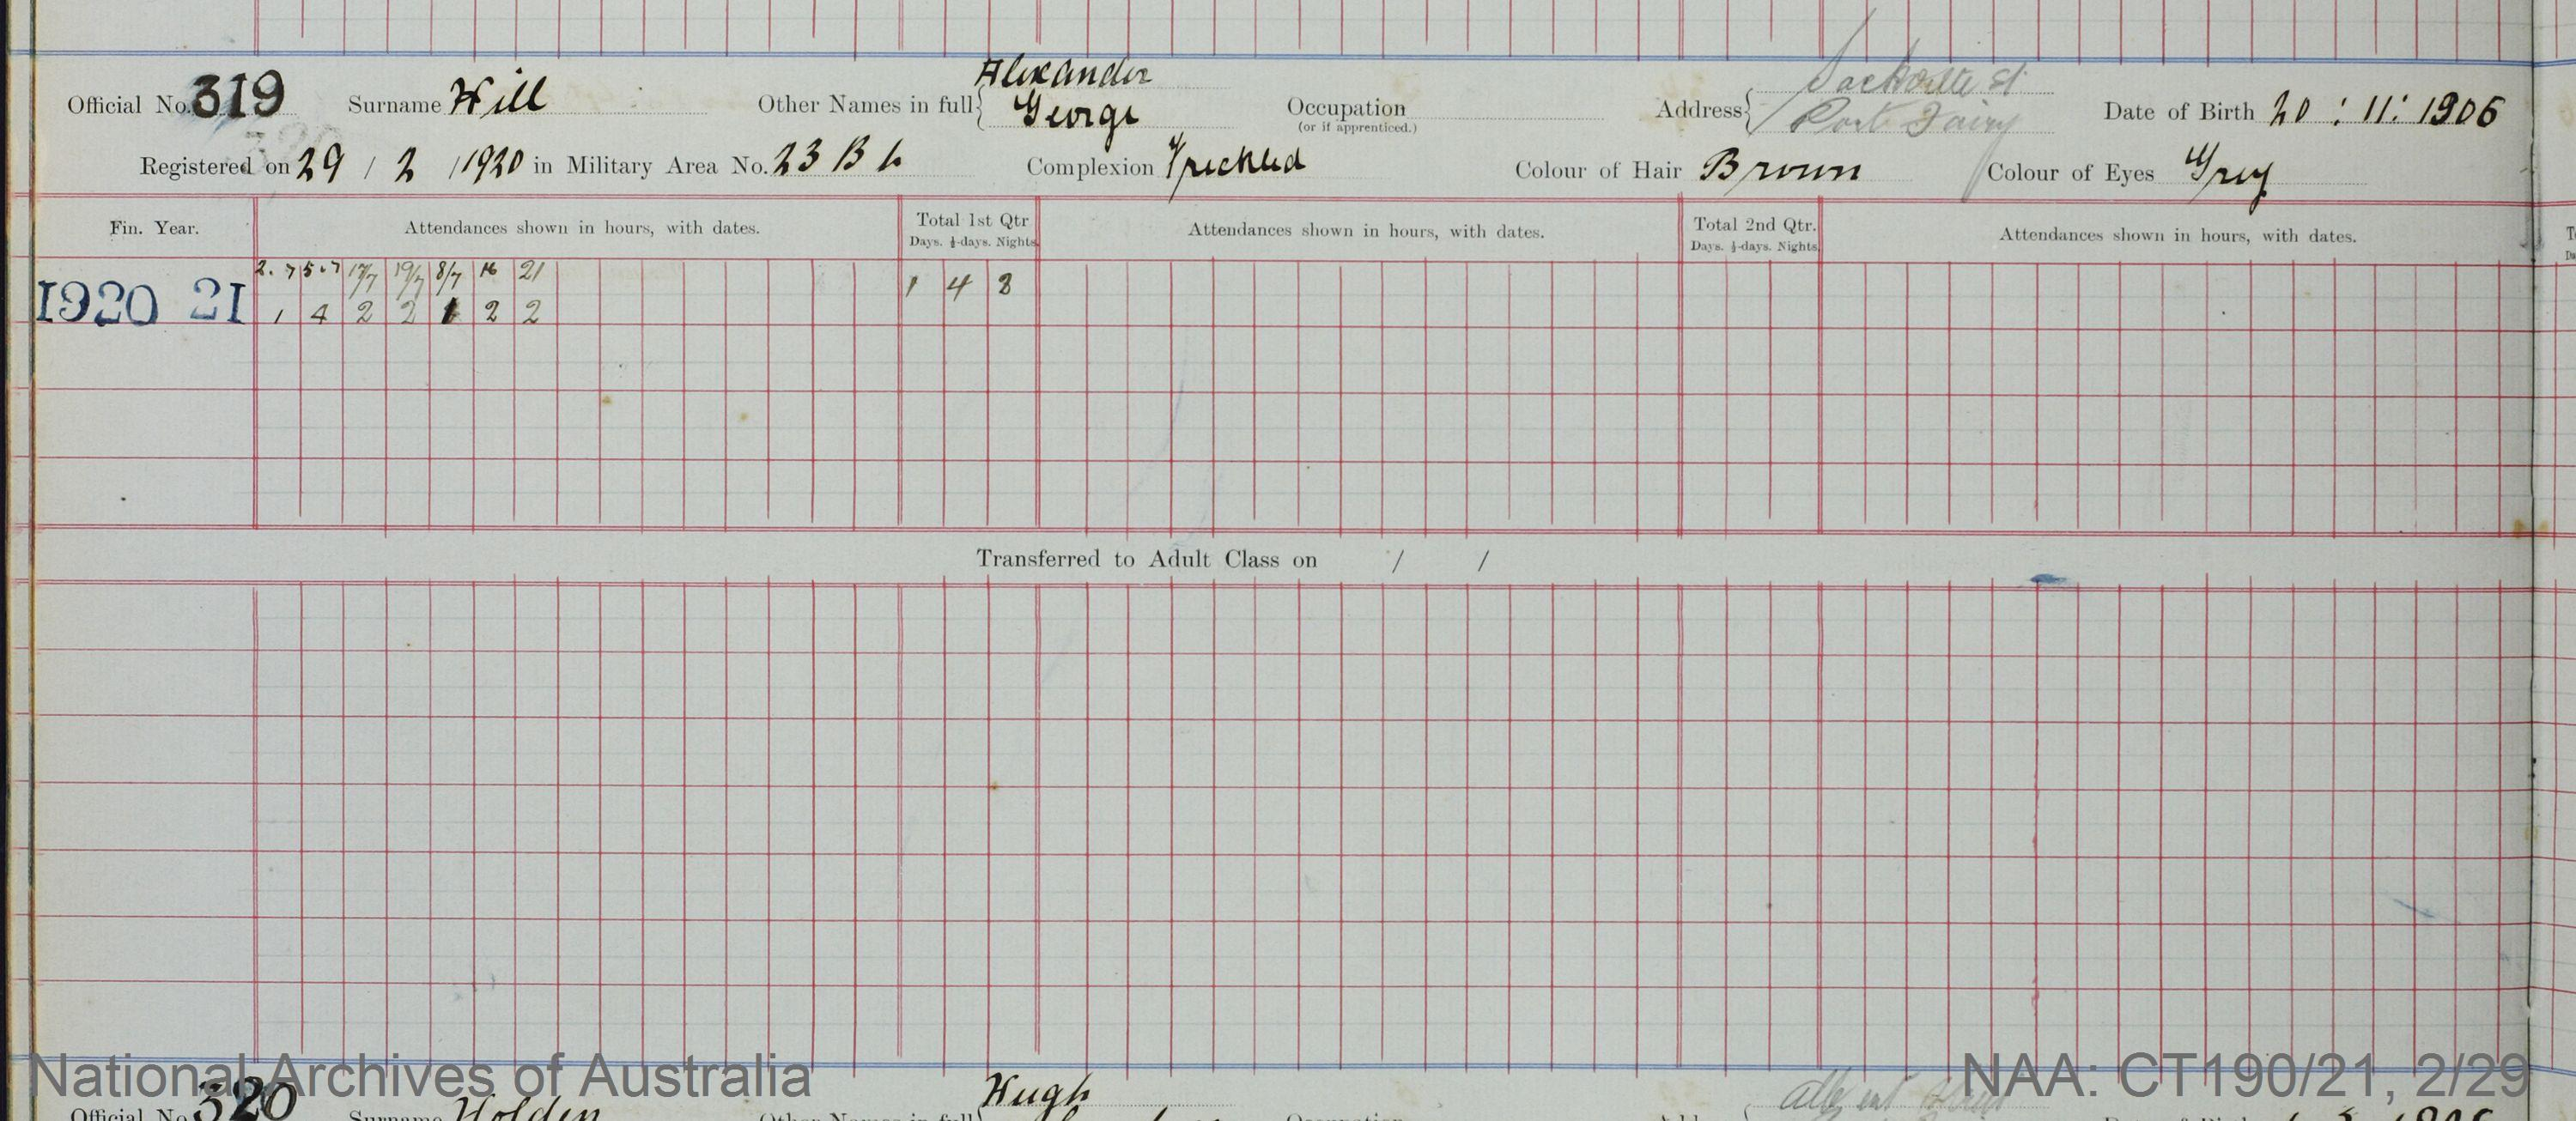 SURNAME - HILL;  GIVEN NAME(S) - Alexander George;  OFFICIAL NUMBER - 319;  DATE OF BIRTH - 20 November 1906;  PLACE OF BIRTH - [Unknown];  NEXT OF KIN - [Unknown] ;  SERVICE/STATION - Port Fairy;  REGISTRATION DATE - 29 February 1920